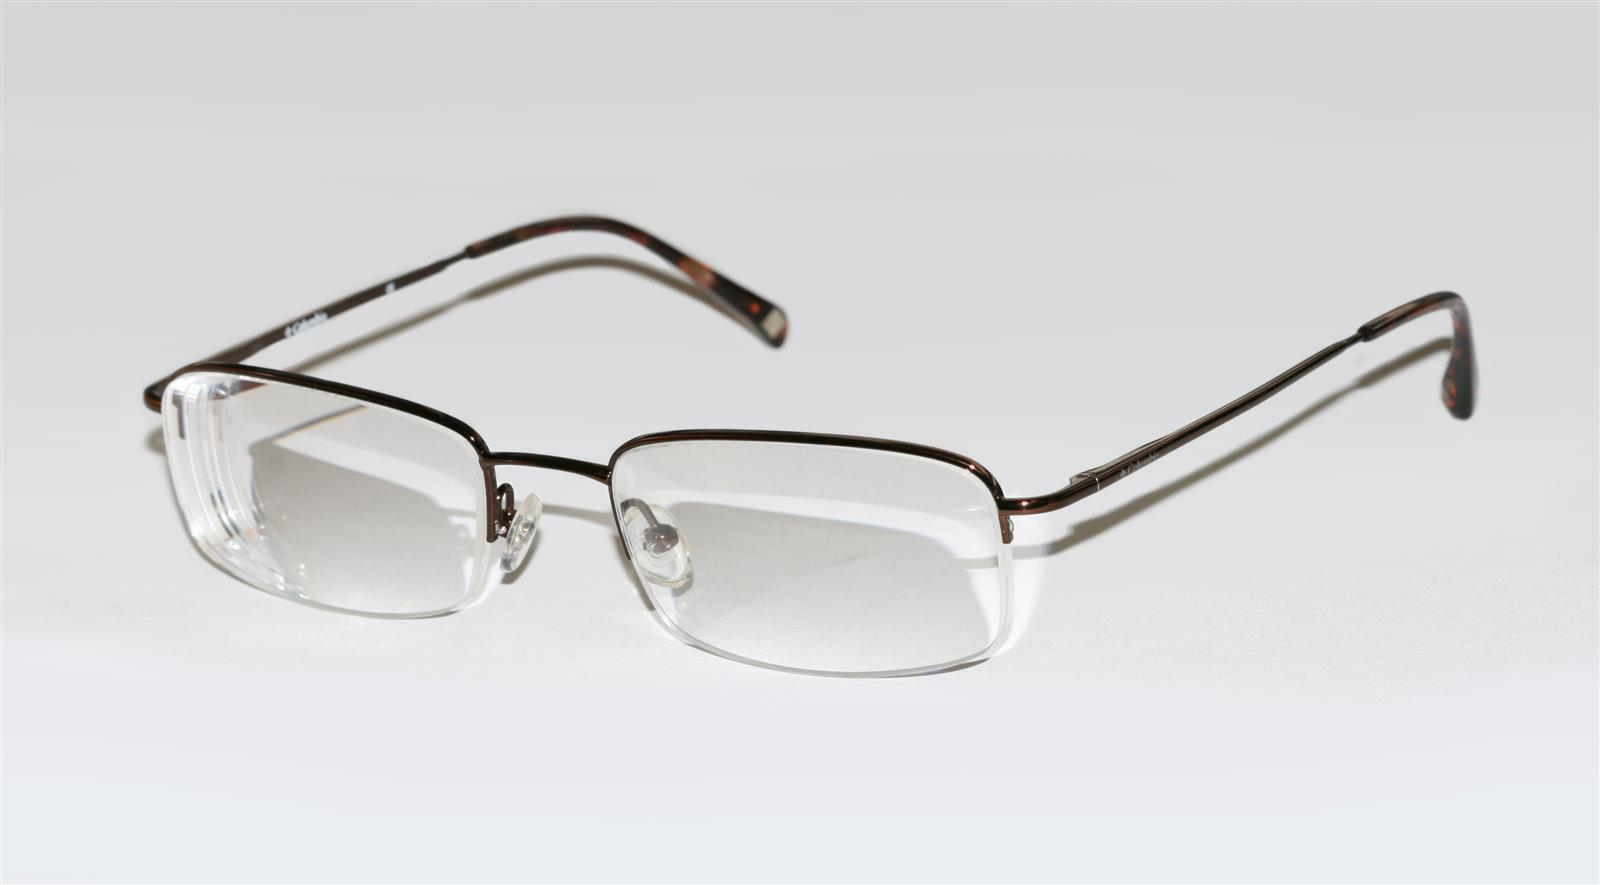 File:Half rim glasses.JPG